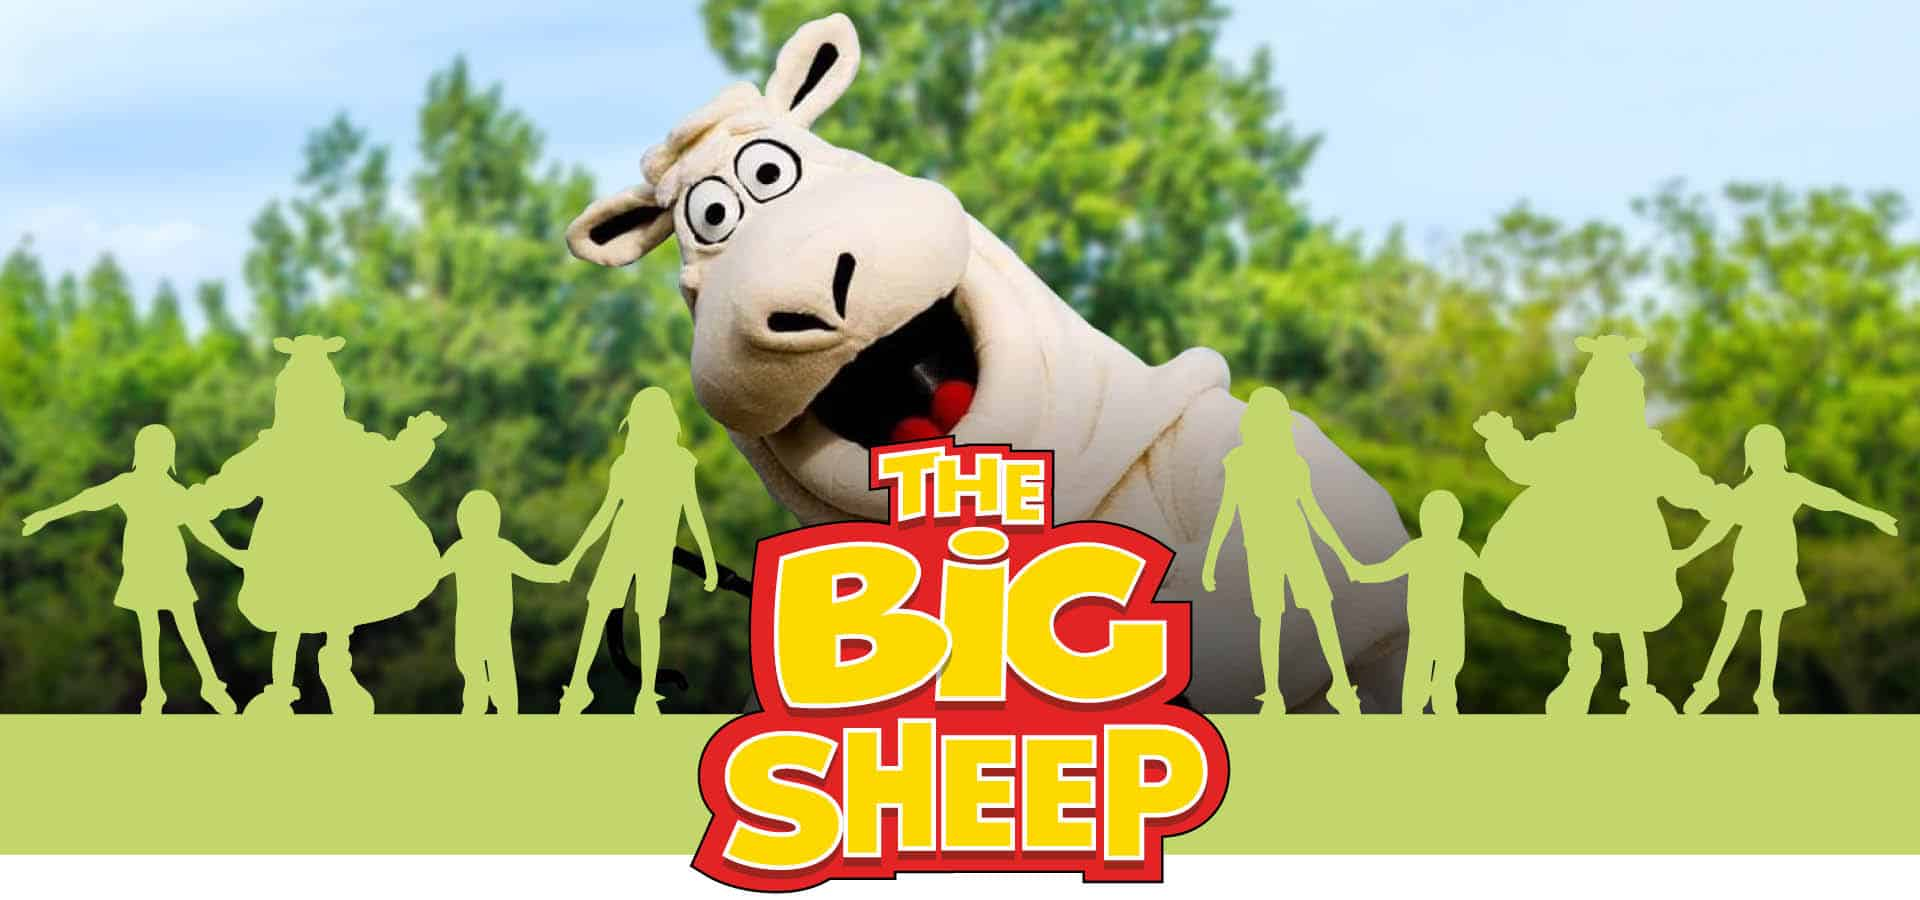 The Big Sheep Wooly The Sheep